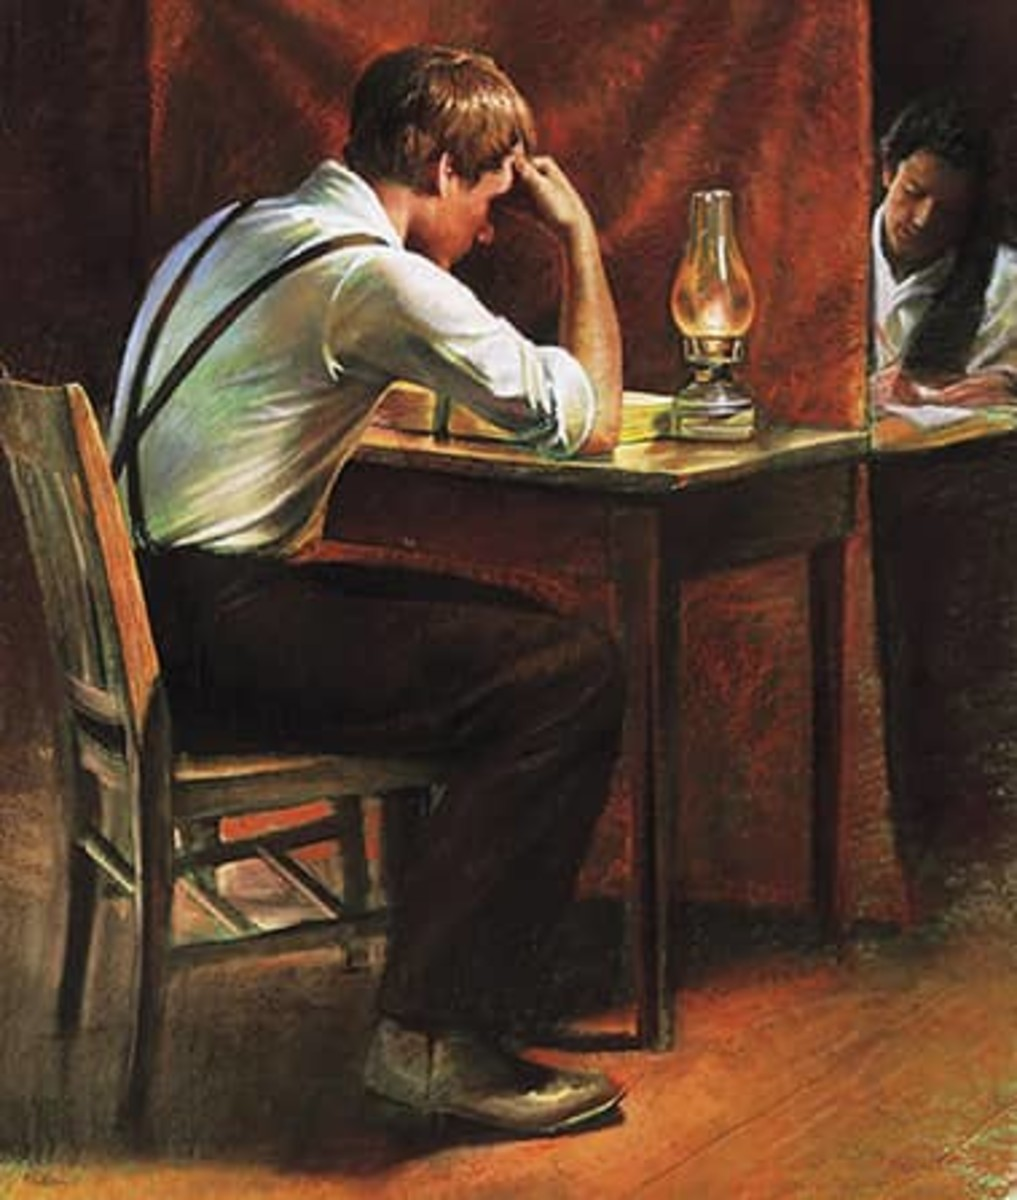 Joseph Smith, Jr. Translating the Gold Plates into the Book of Mormon